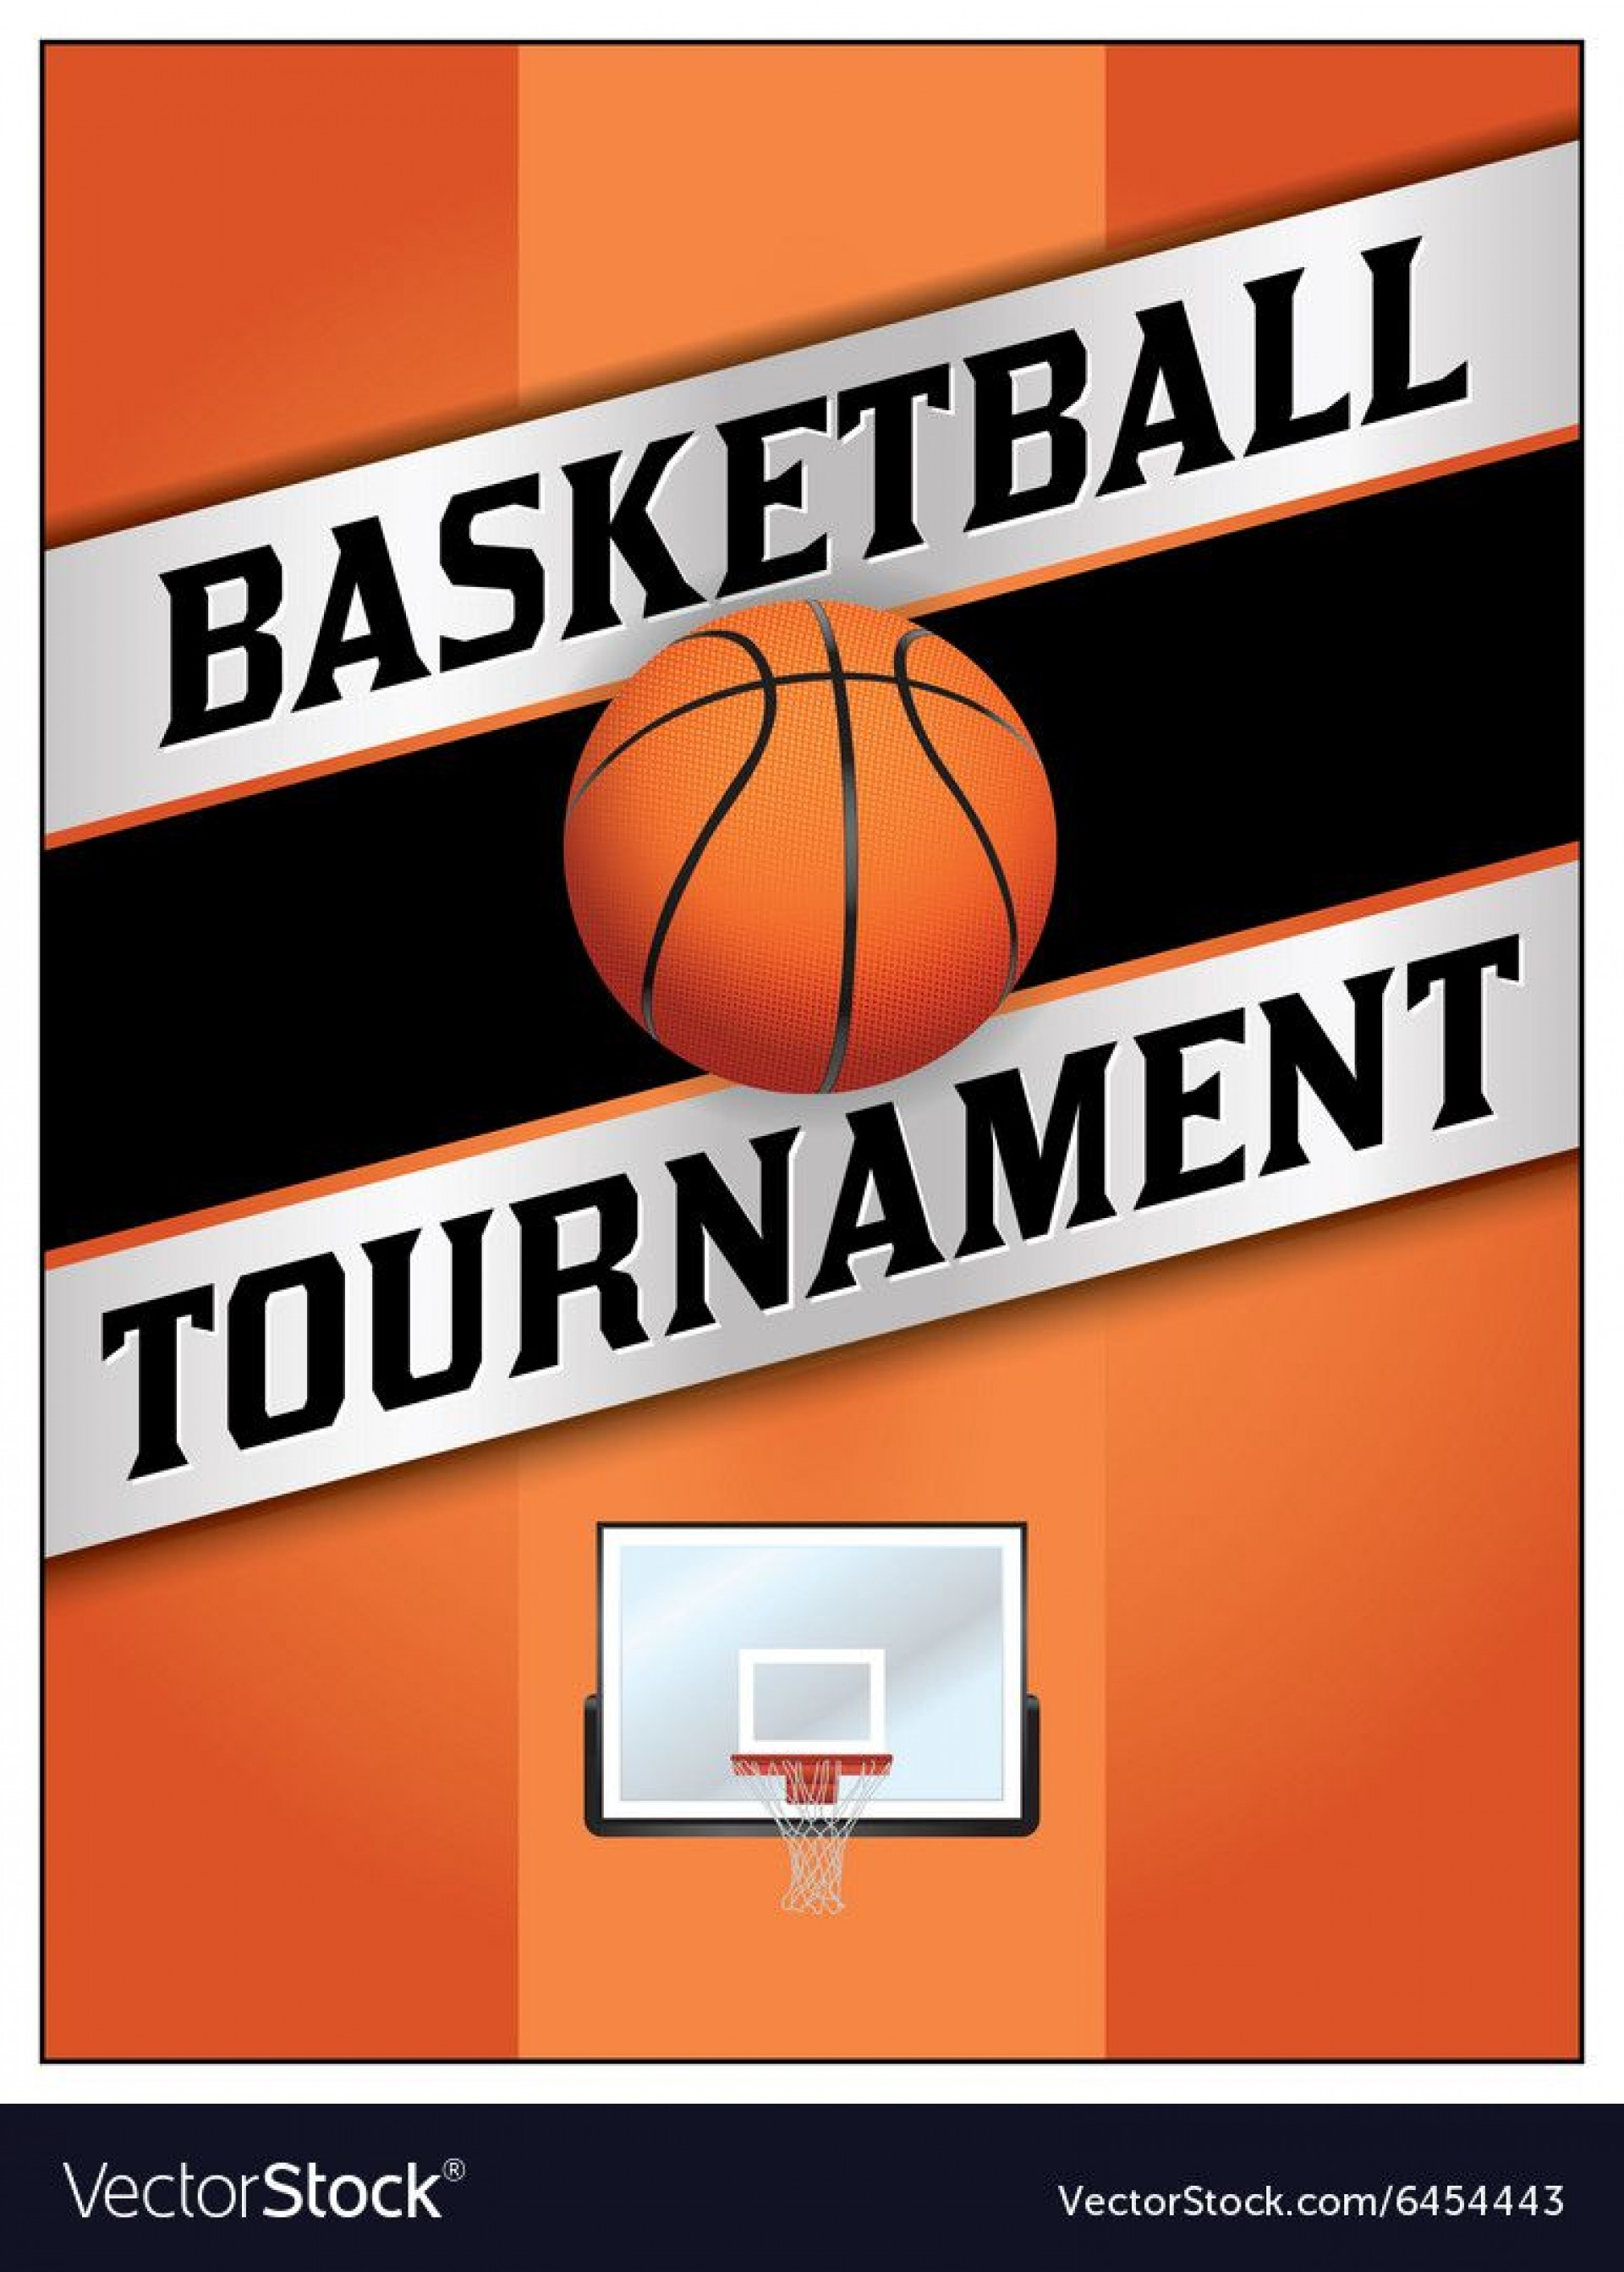 004 Top Basketball Tournament Flyer Template Highest Quality  3 On Free1920